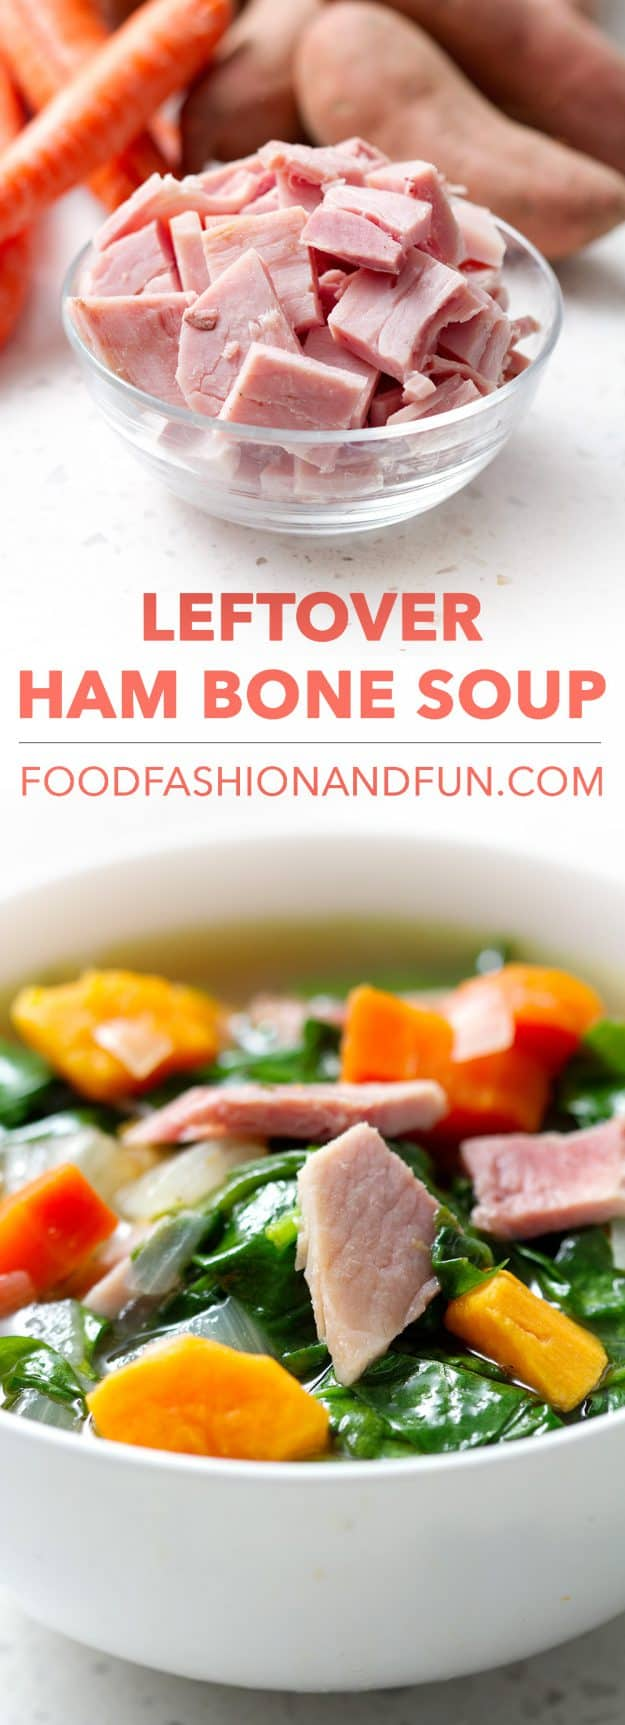 Save the bone and a few cups of leftover ham from last night's glazed ham to make this Leftover Ham Bone Soup. It's packed with colorful and good-for-you foods like carrots, sweet potatoes and spinach. This recipe is paleo/AIP that means gluten, dairy and nut free.